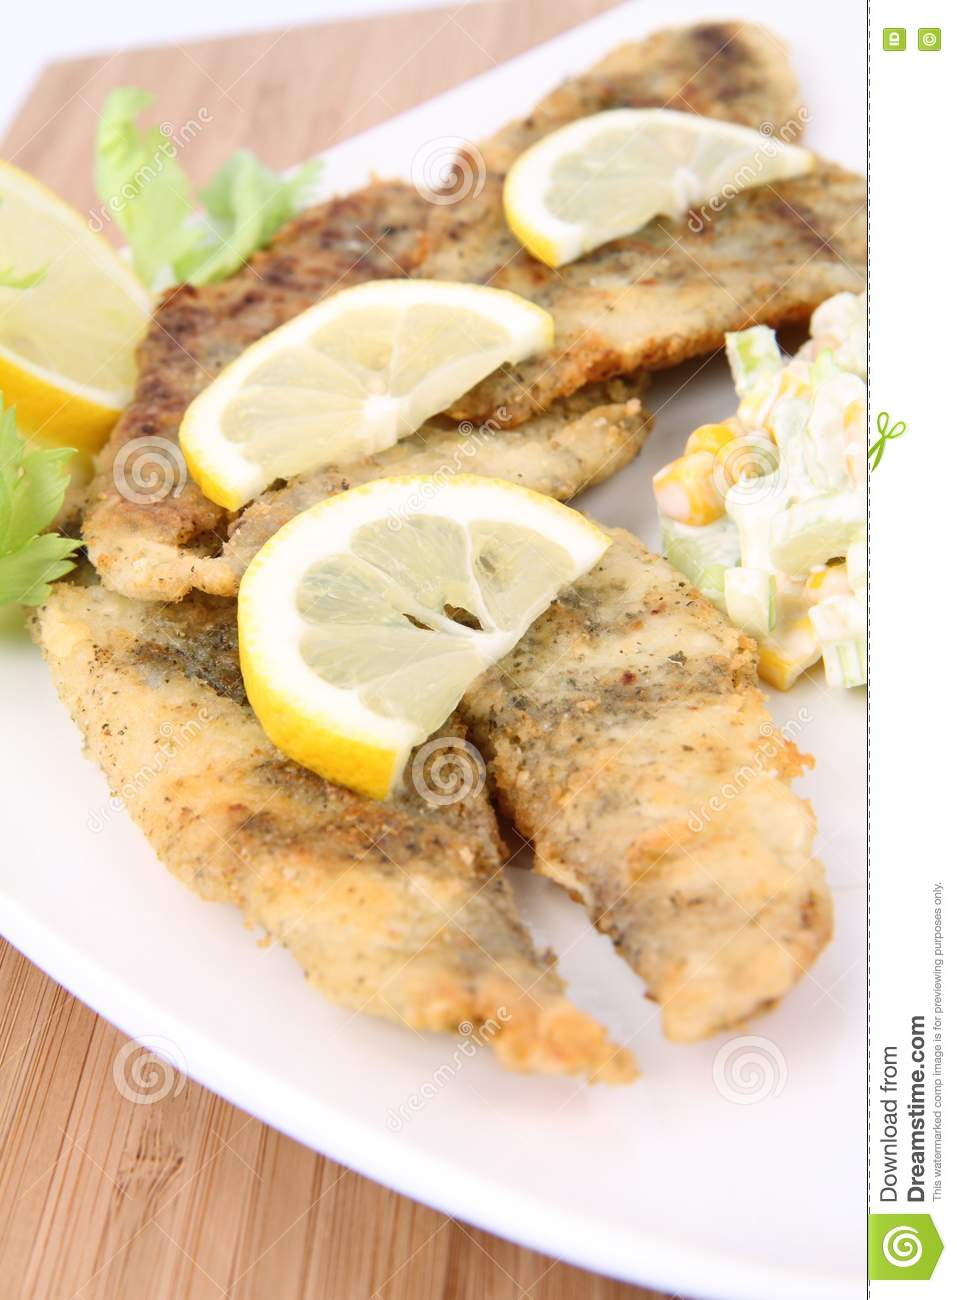 Fried Fish With Side Salad Stock Image Image 17455571